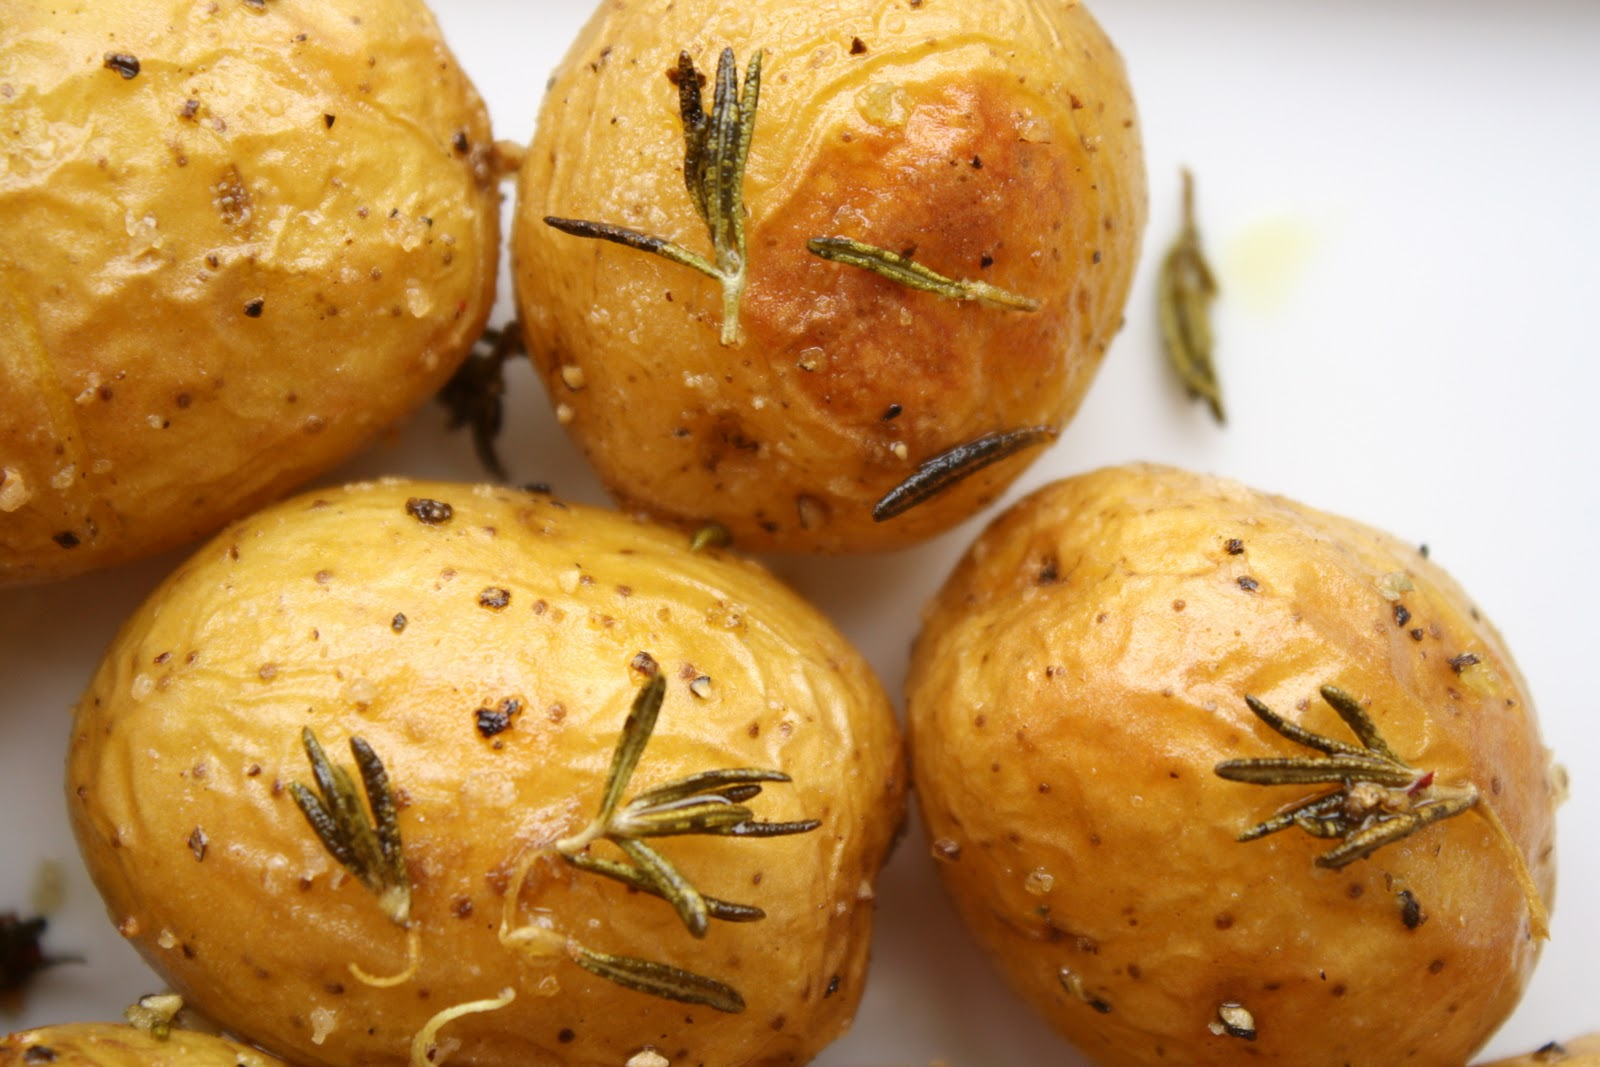 Cosmocookie Baked New Potatoes With Sea Salt And Rosemary